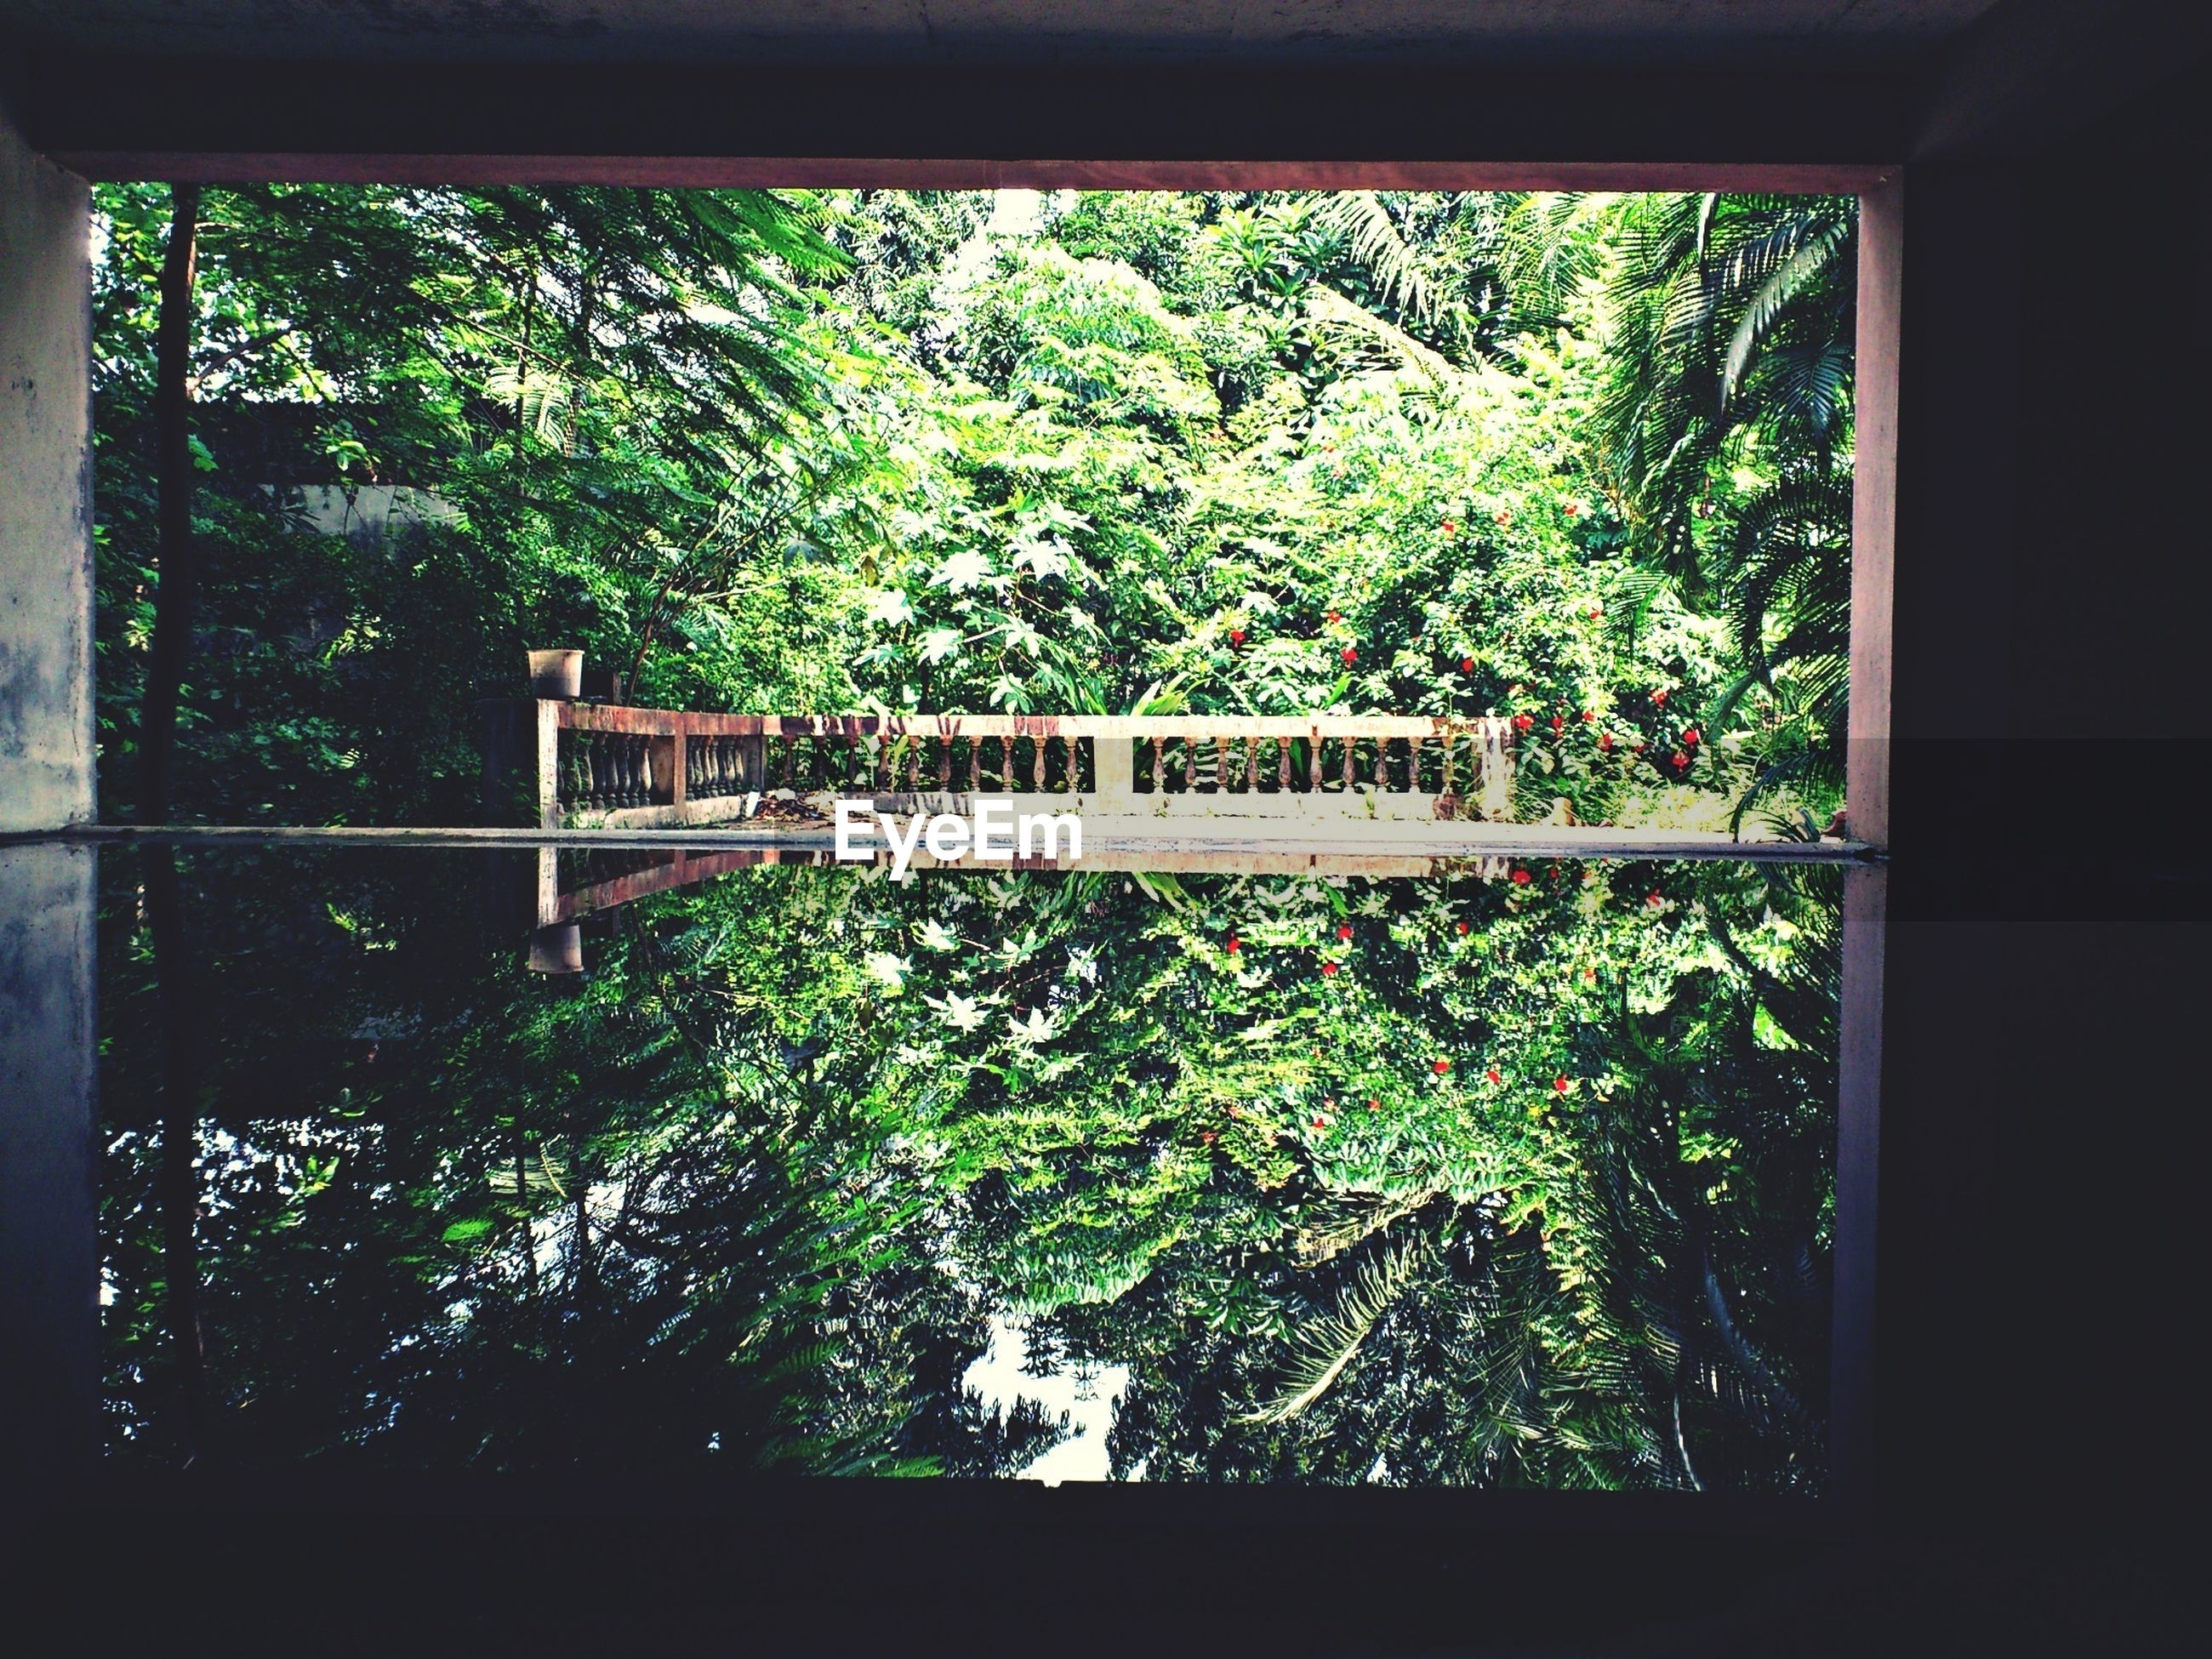 tree, growth, green color, railing, indoors, plant, window, branch, day, nature, text, built structure, no people, lush foliage, fence, tranquility, forest, sunlight, metal, architecture